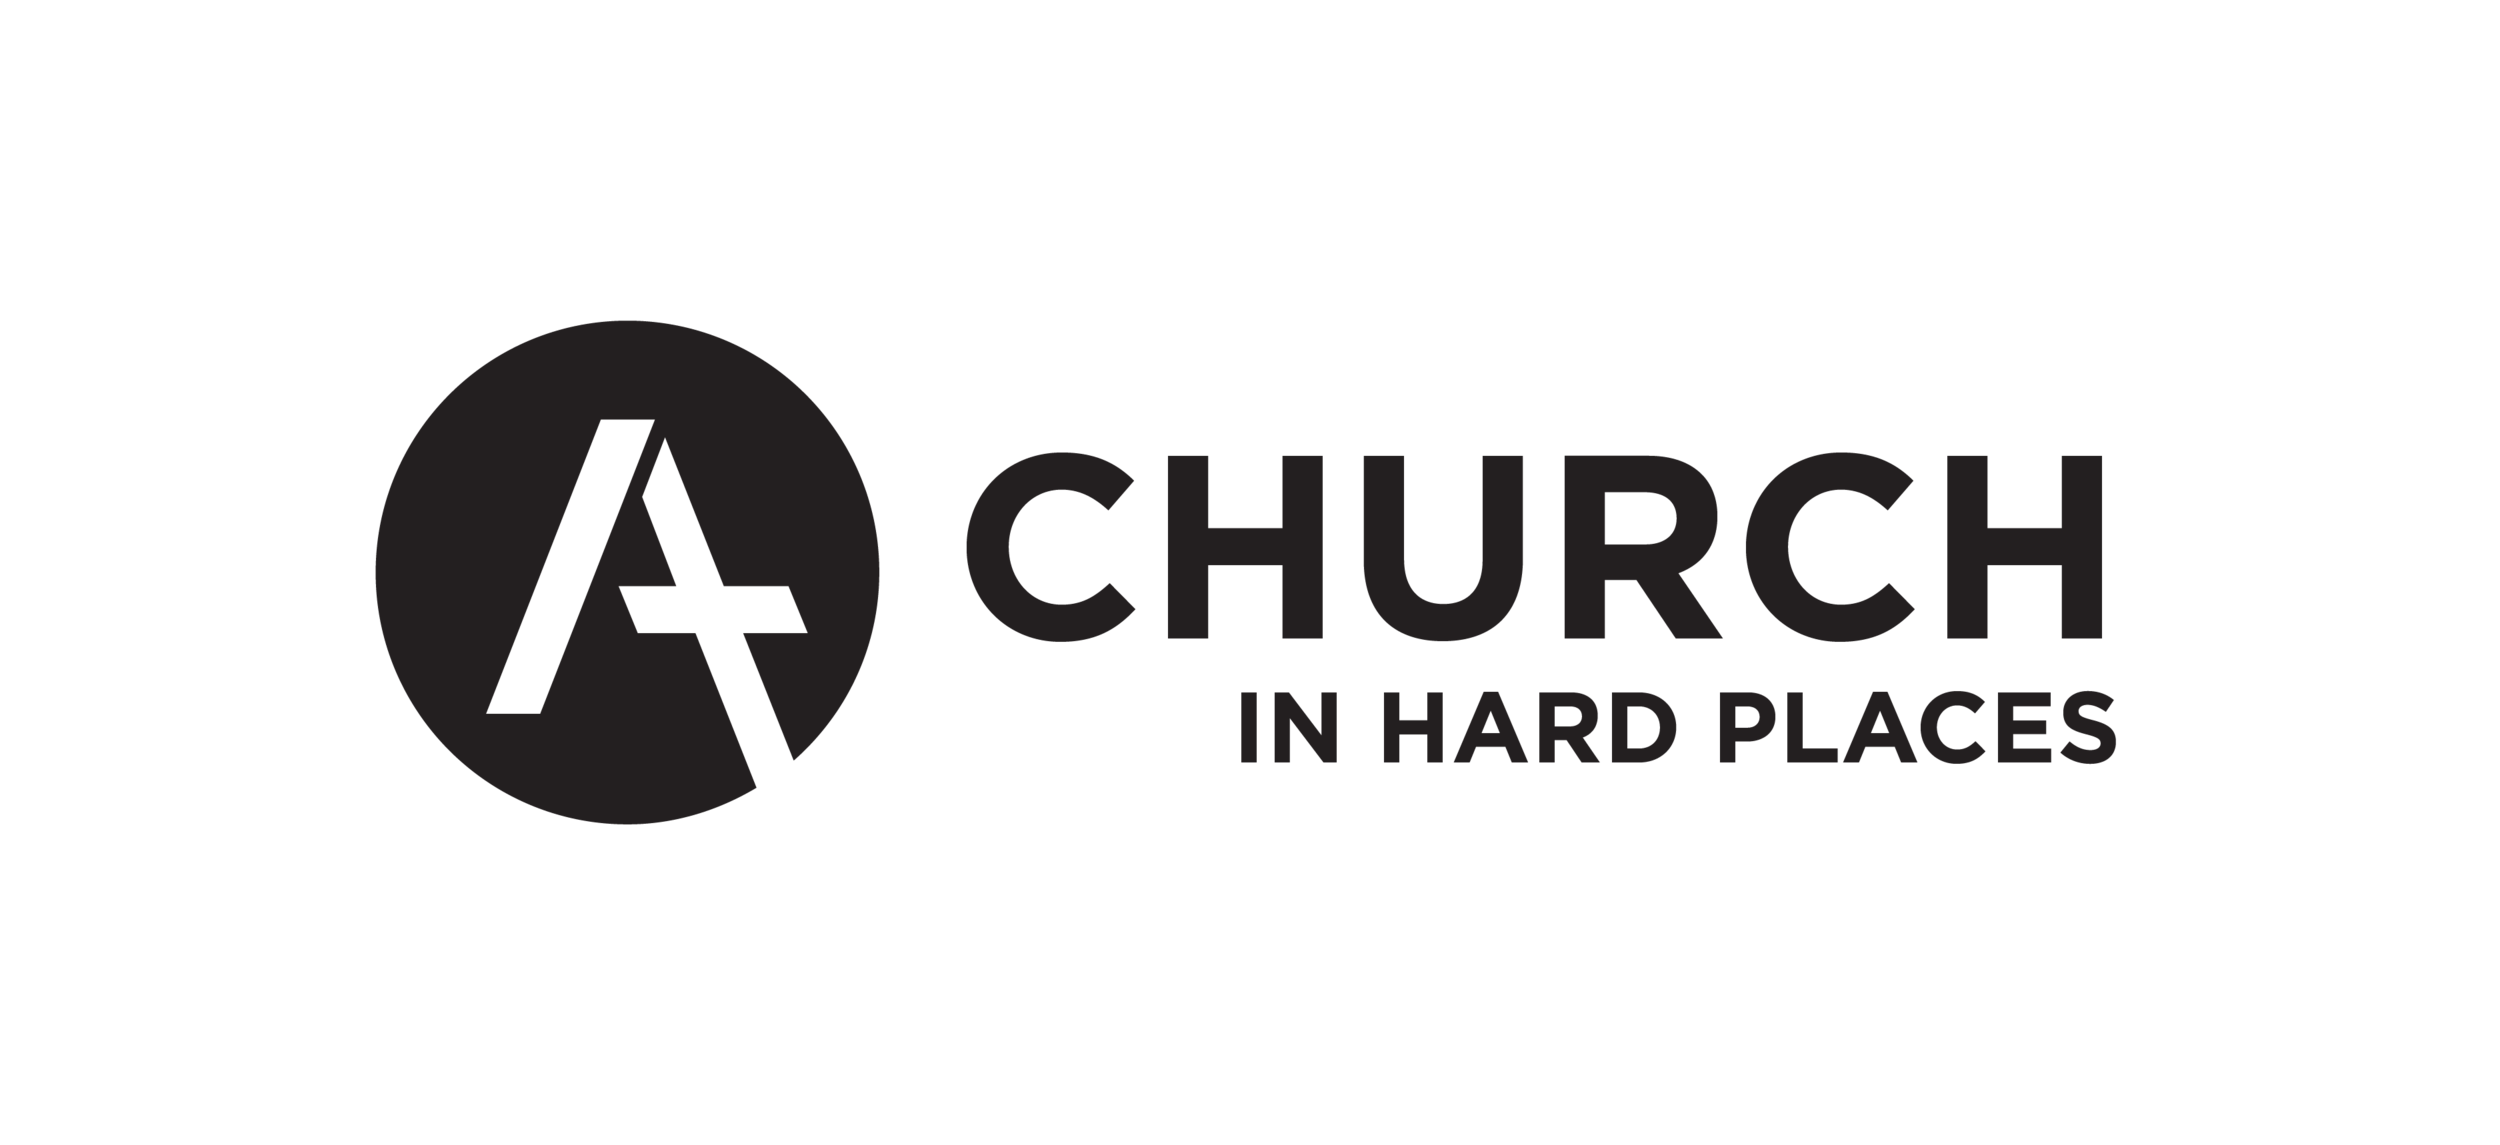 thumbnail_Church in Hard Places Logo Black.png